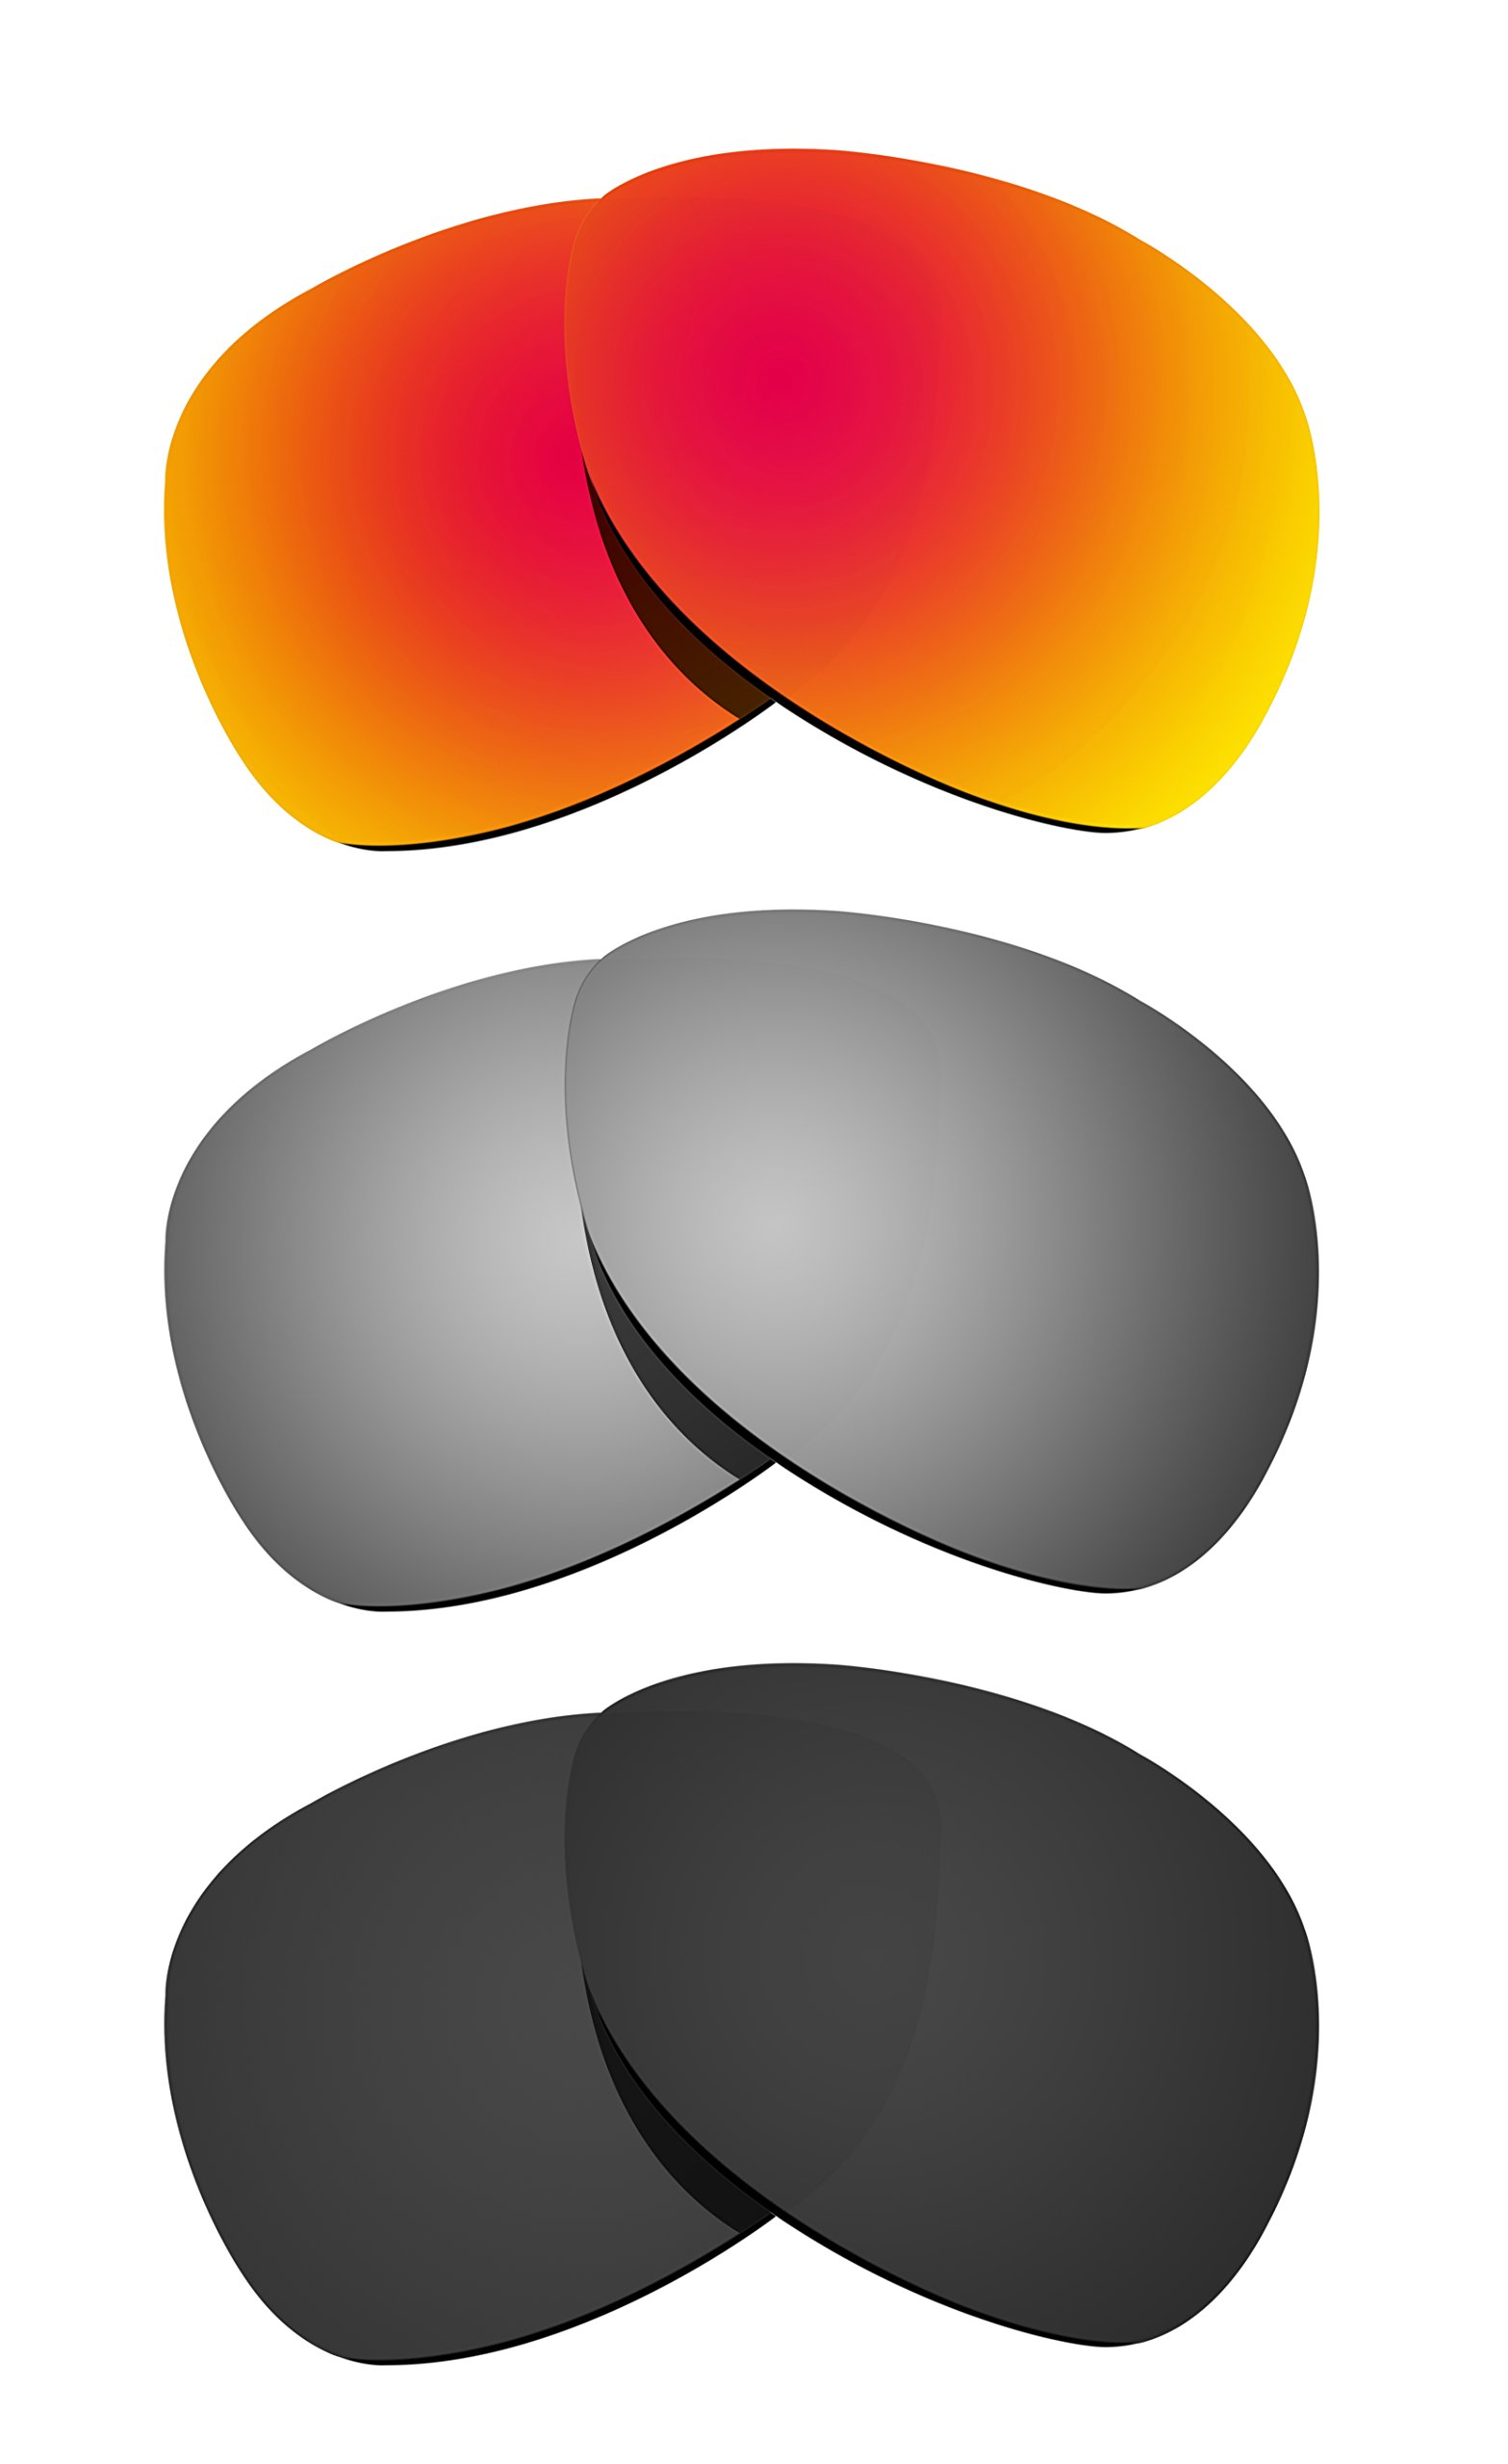 Littlebird4 3 Pairs 1.5mm Polarized Replacement Lenses for Oakley Crosshair Sunglasses - Multiple Options (Black+Silver+Fire Red) by Littlebird4